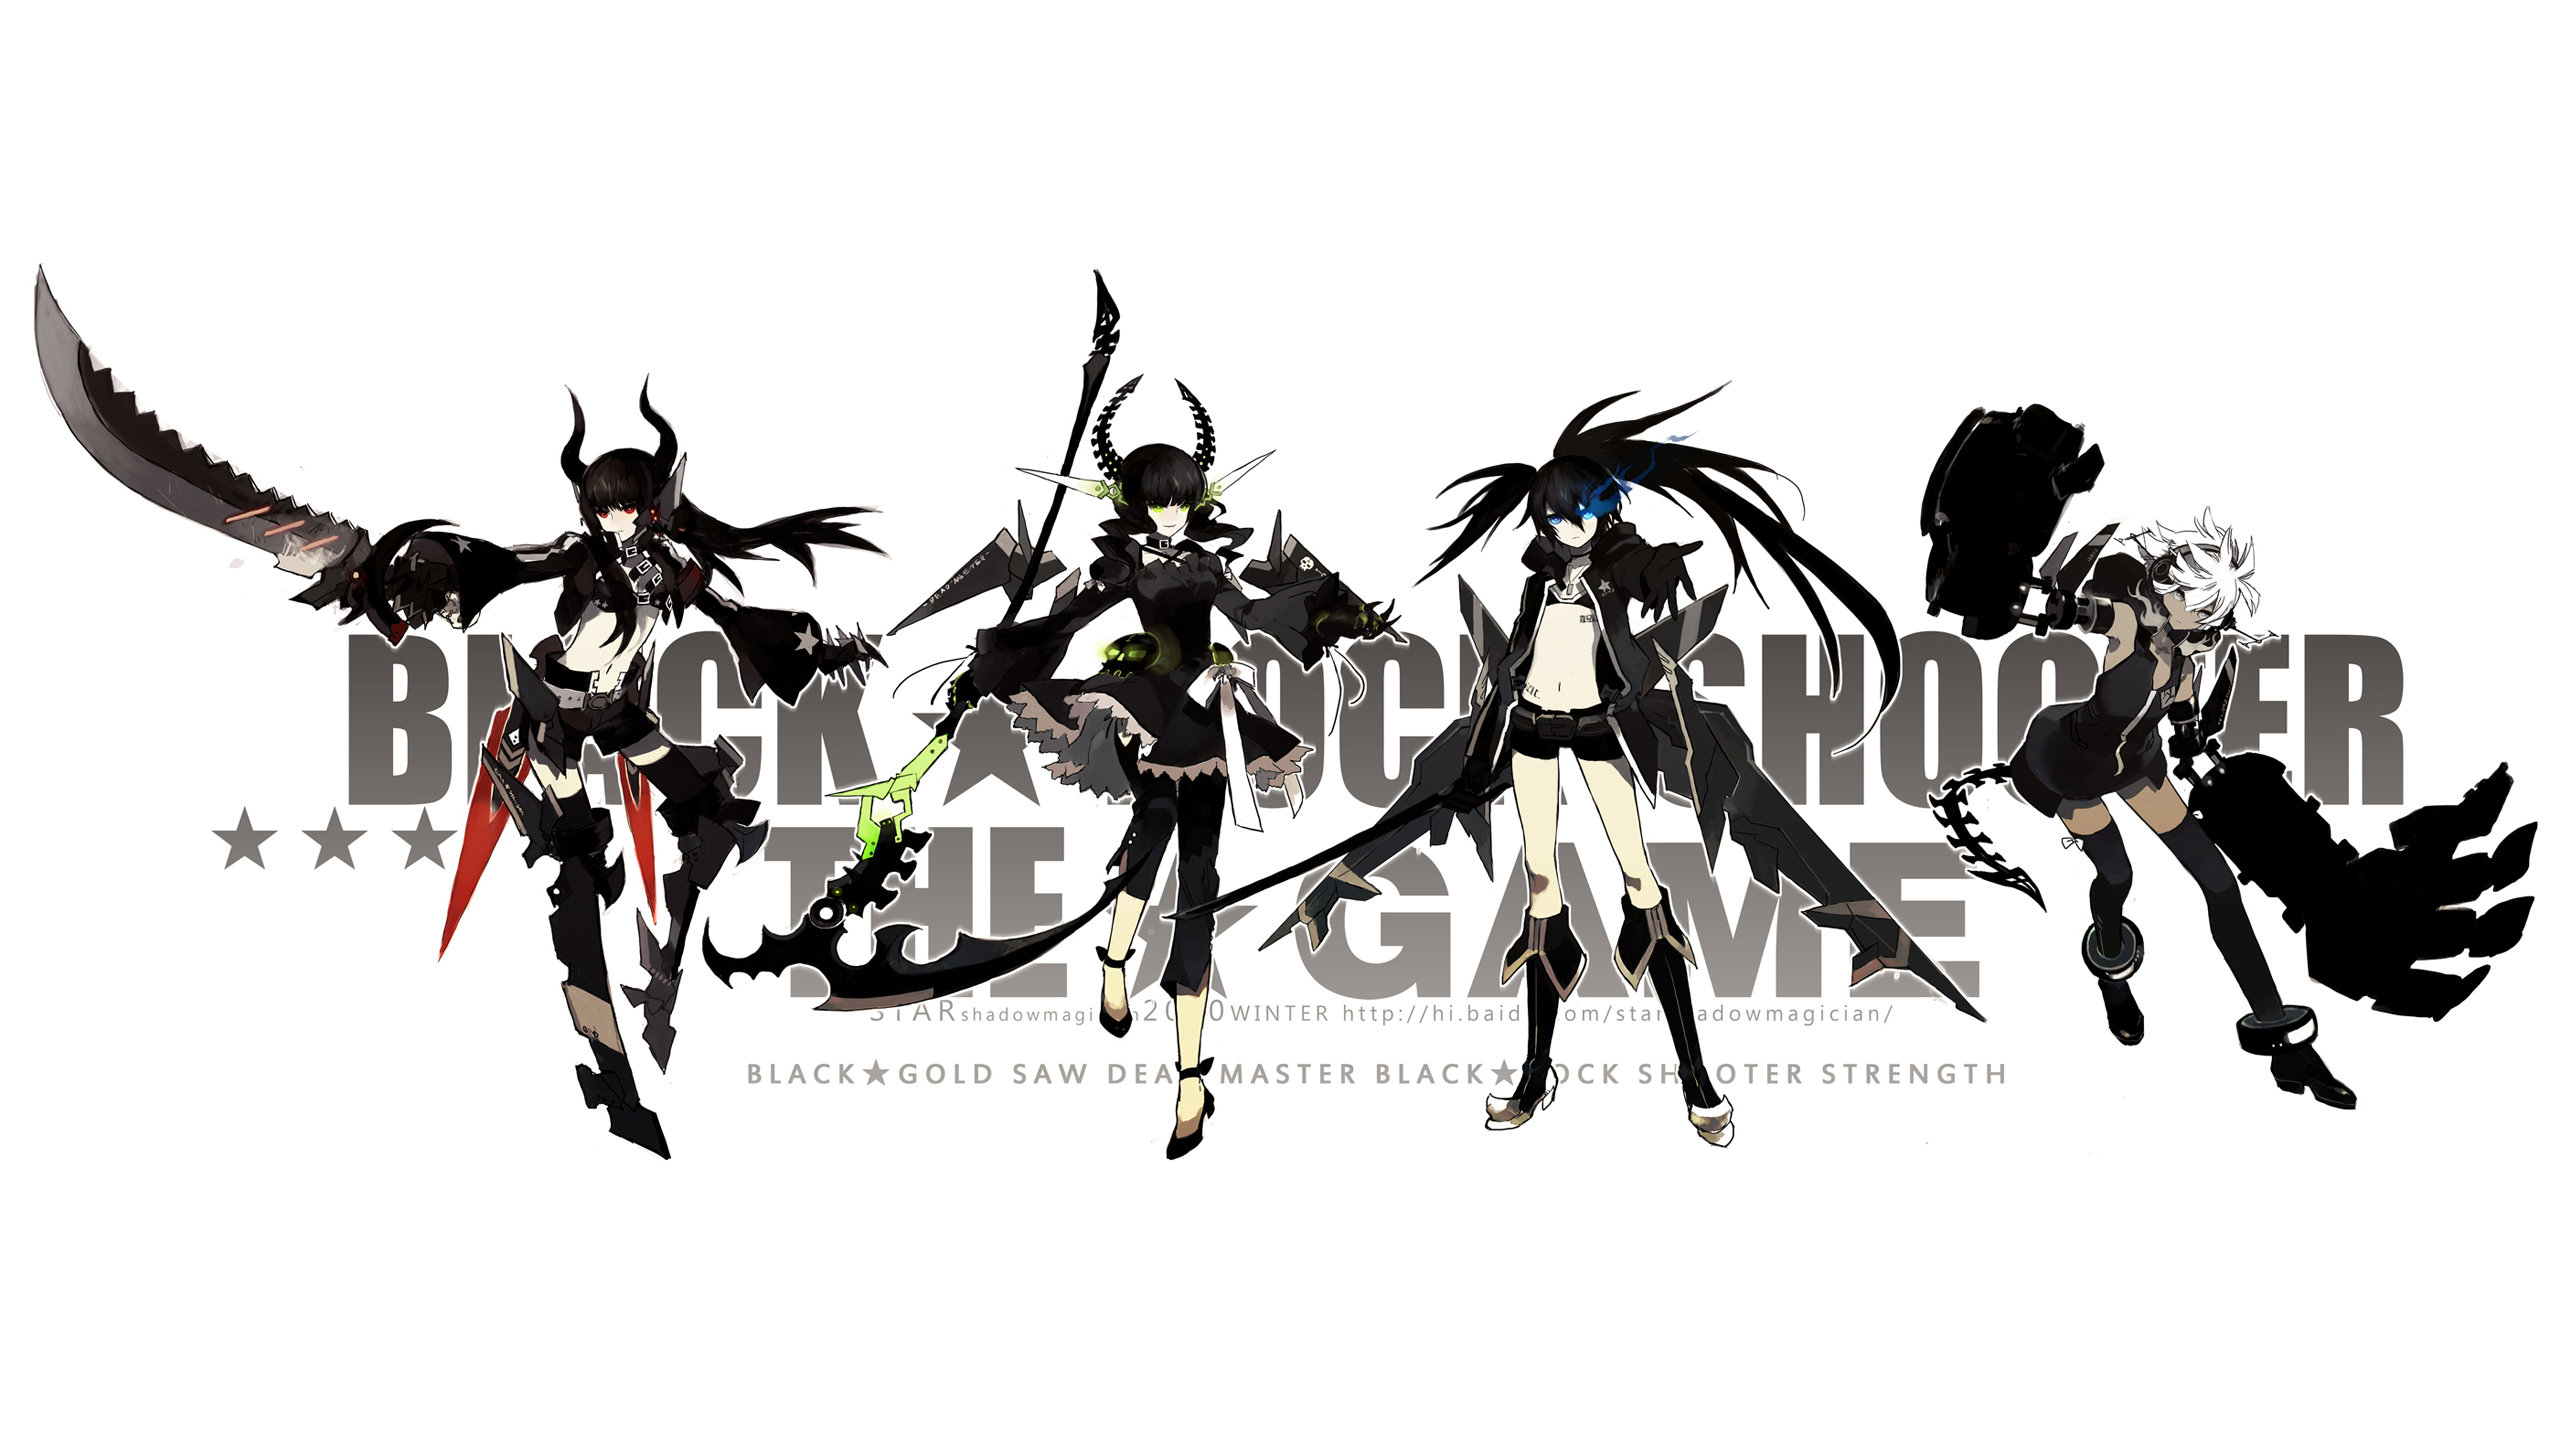 Awesome Dead Master (Black Rock Shooter) free background ID:454581 for hd 2560x1440 desktop